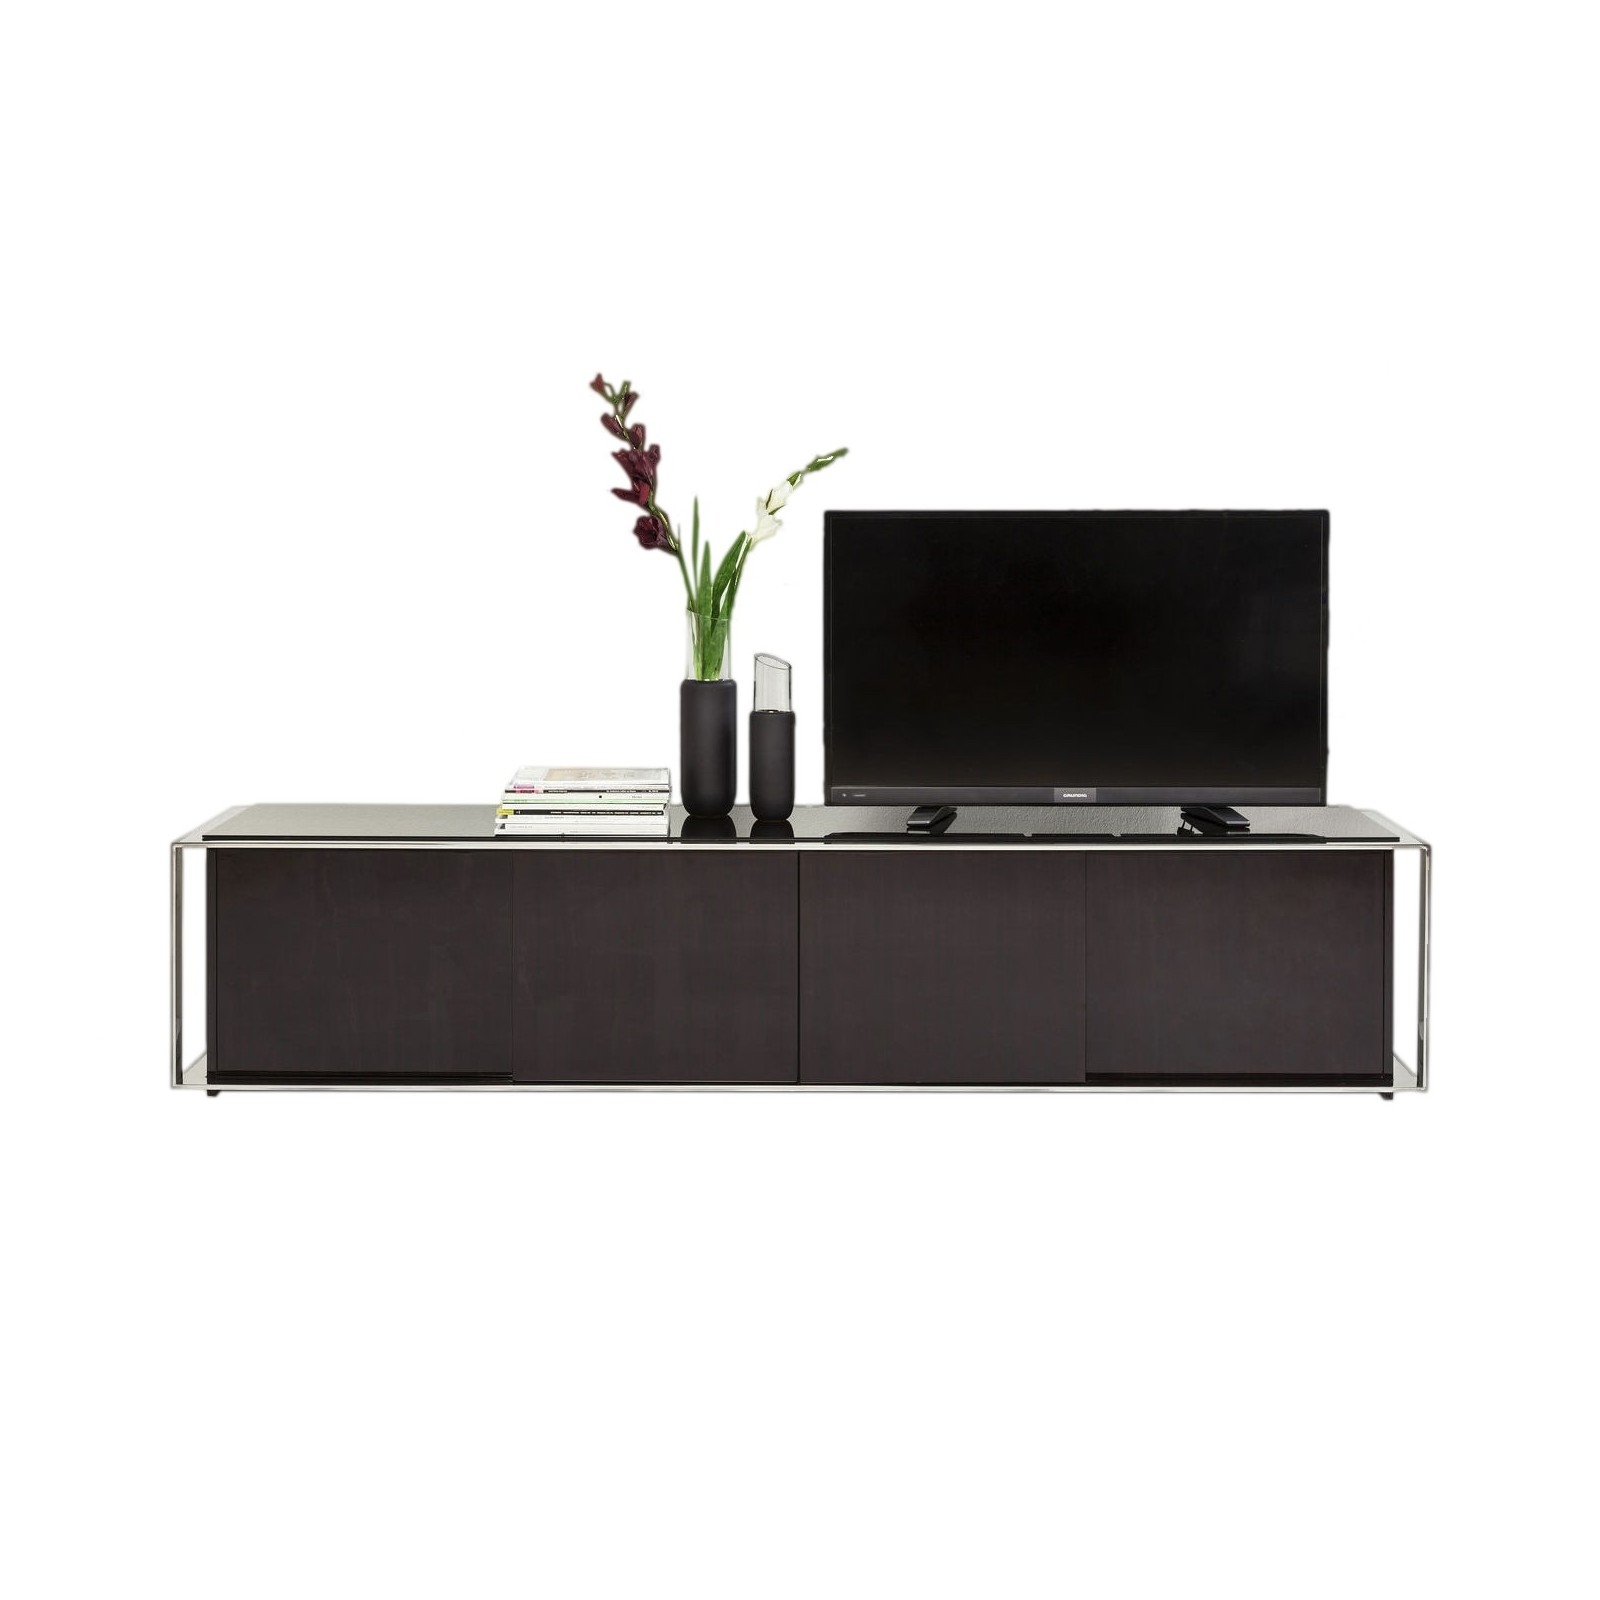 meuble tv moderne marron vanity kare design. Black Bedroom Furniture Sets. Home Design Ideas